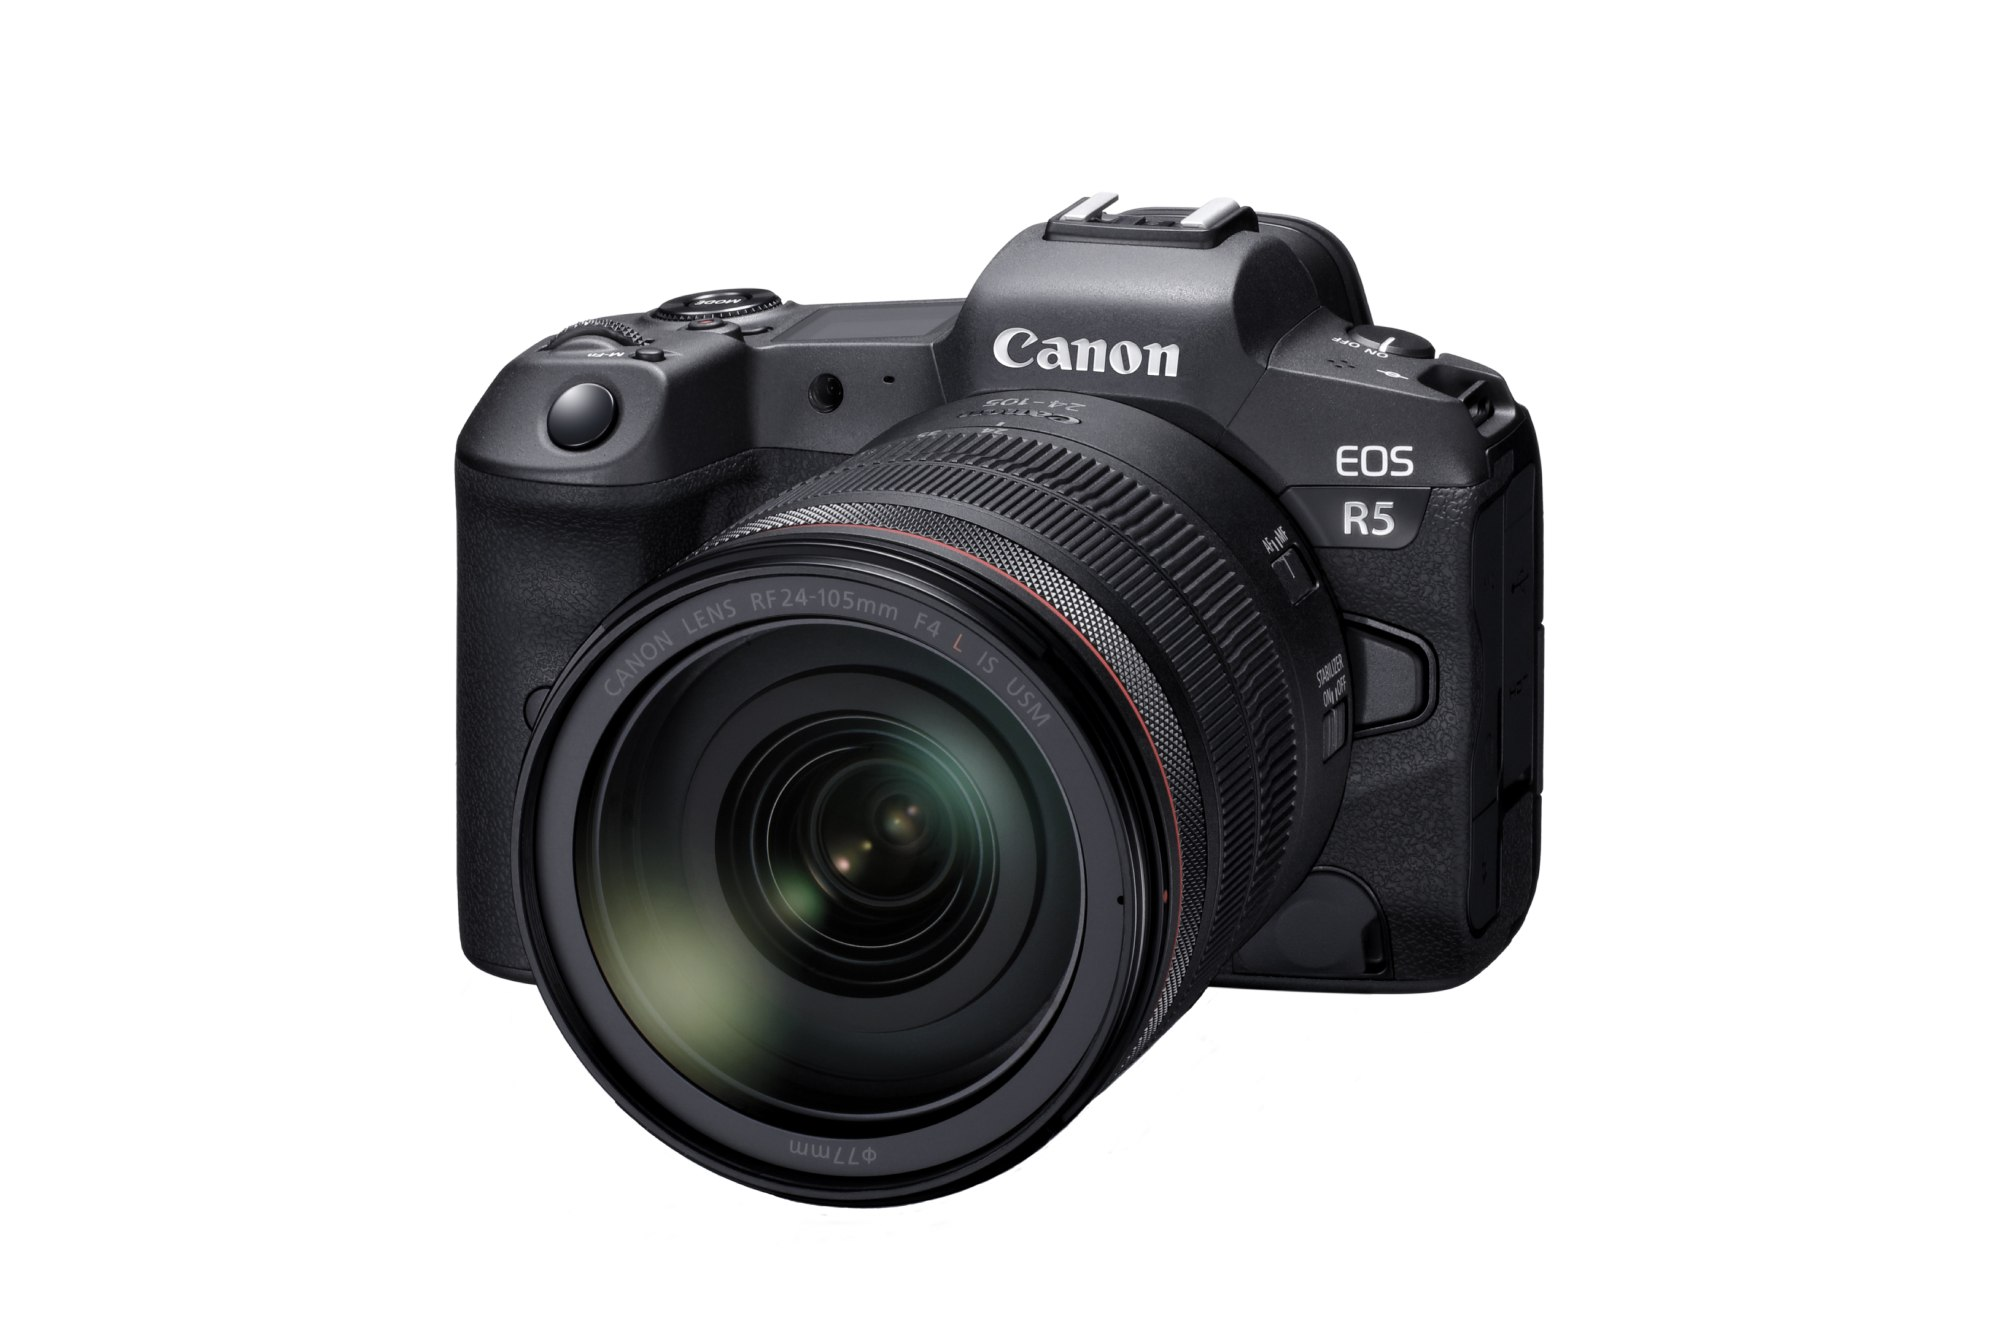 canon eos r5 announcement image